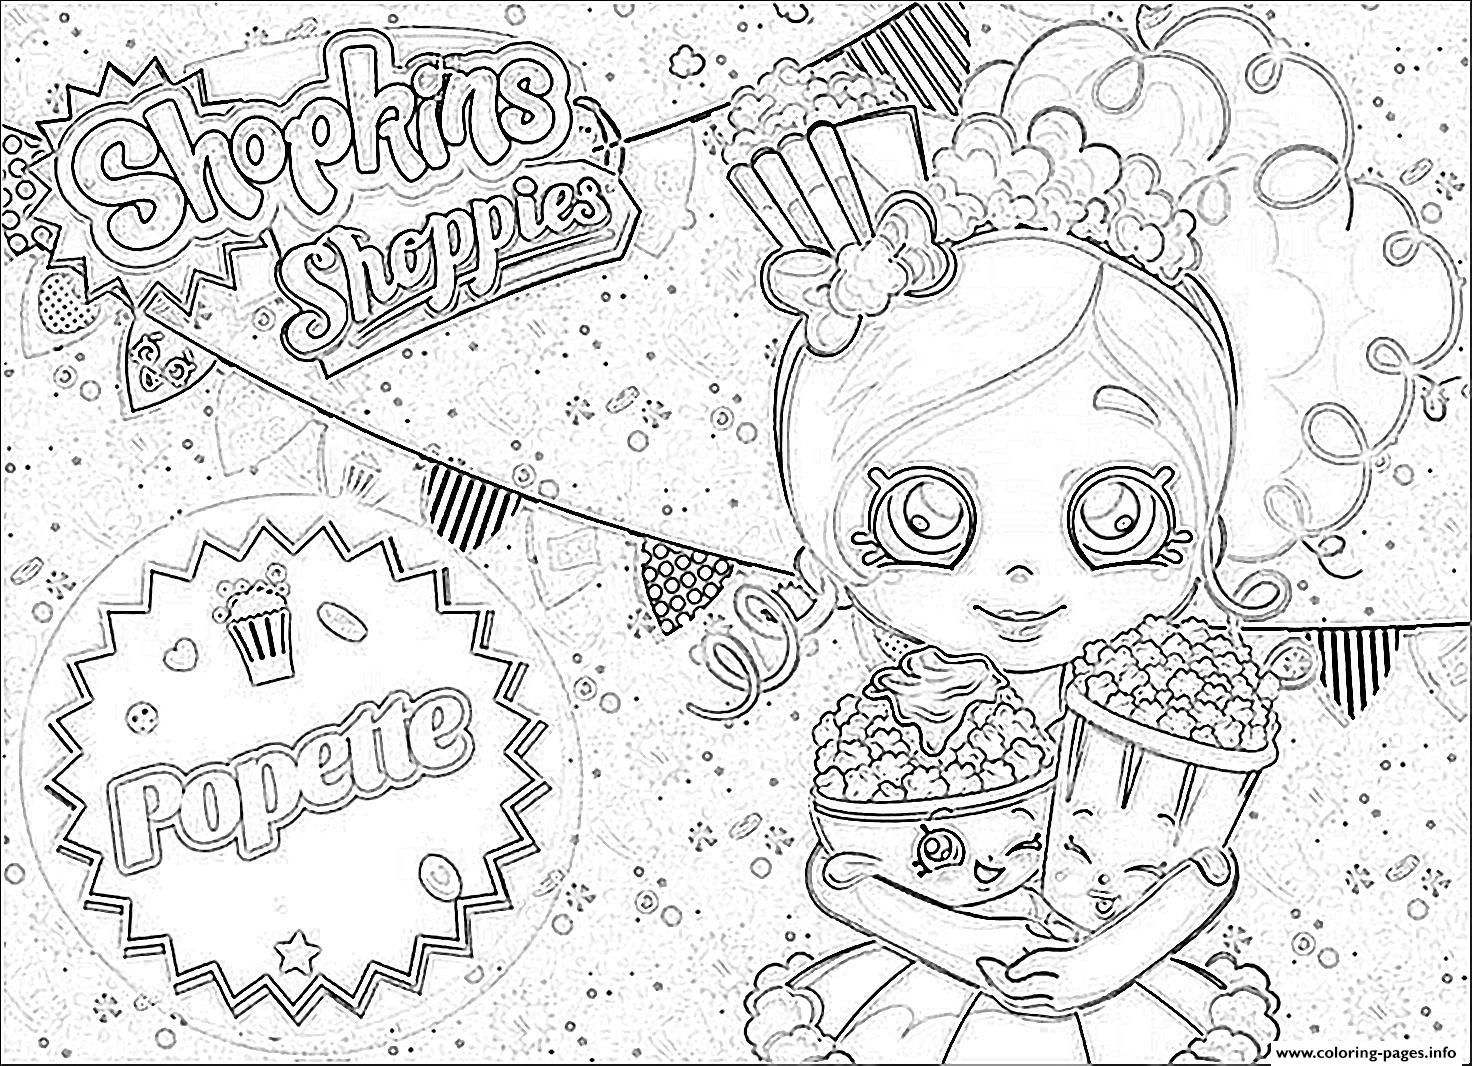 shopkins popette official Coloring